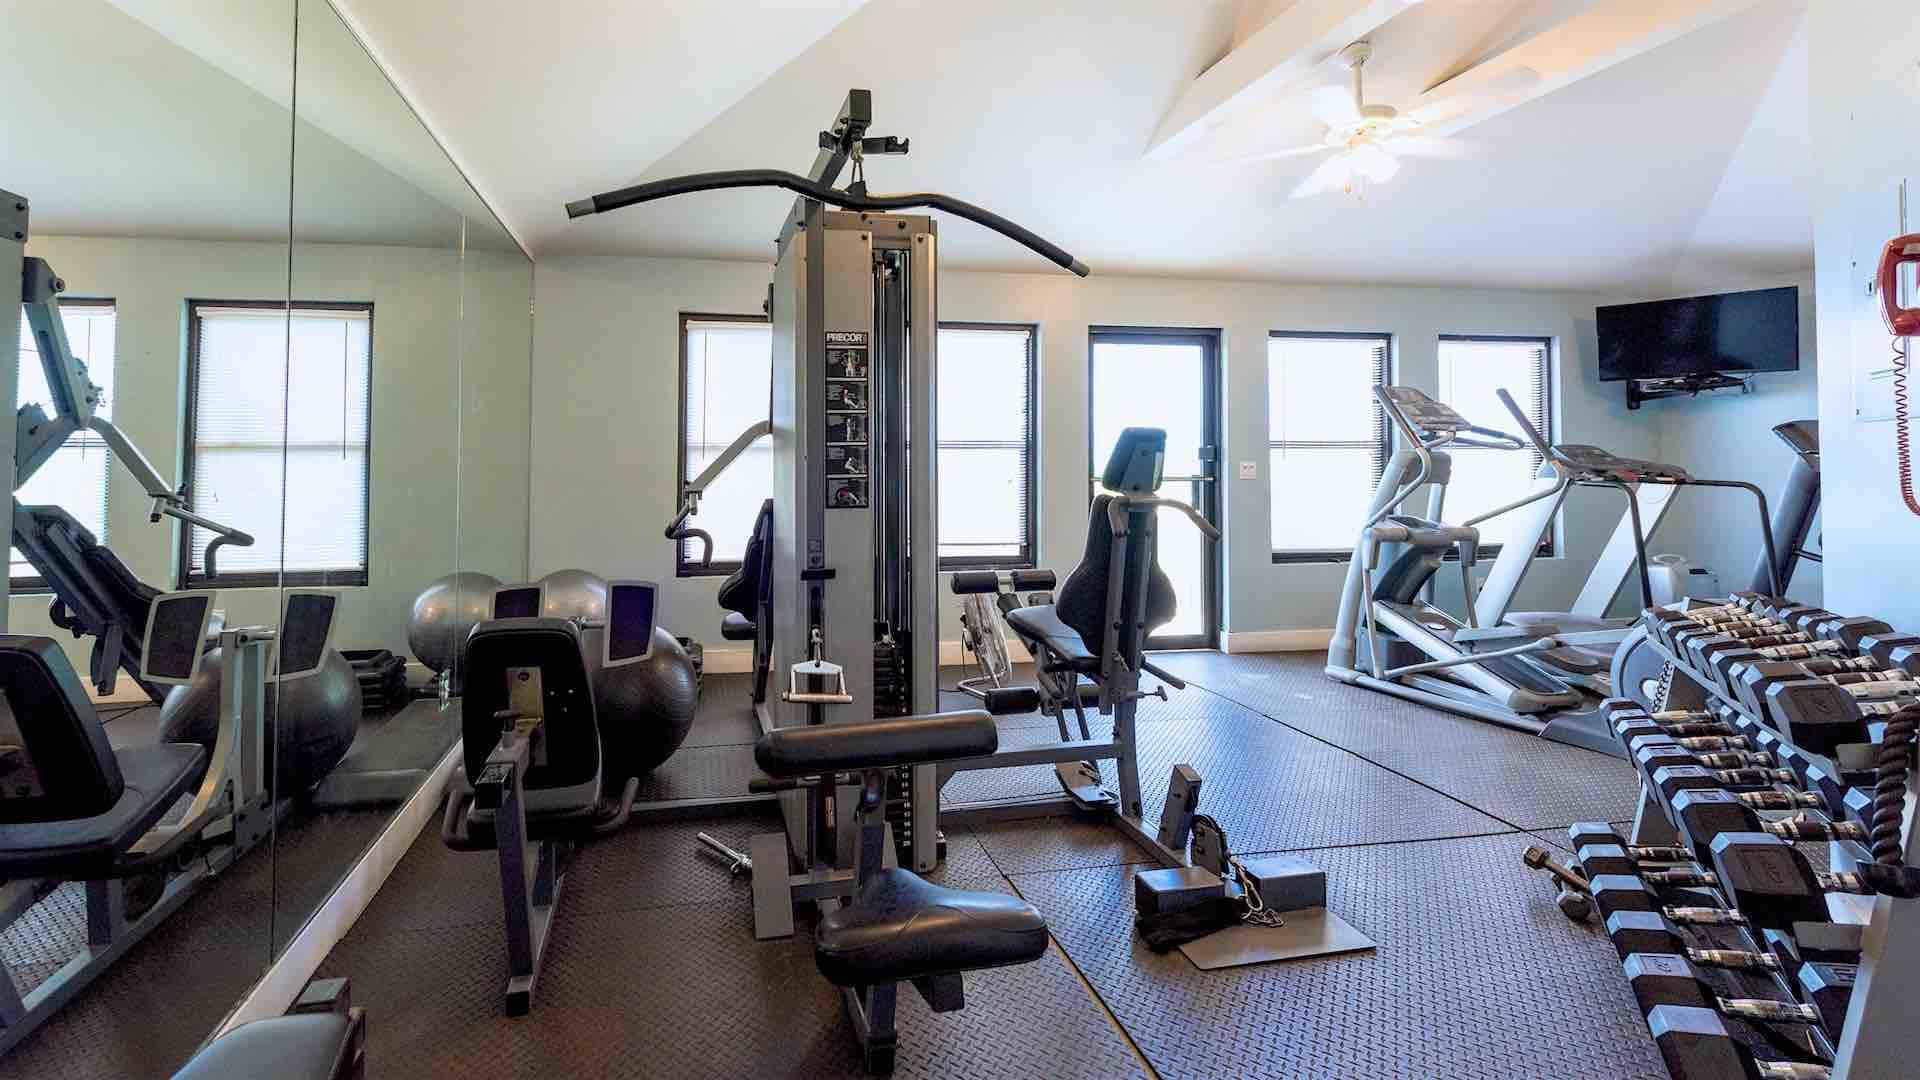 Enjoy a nice workout in the Fitness Center...